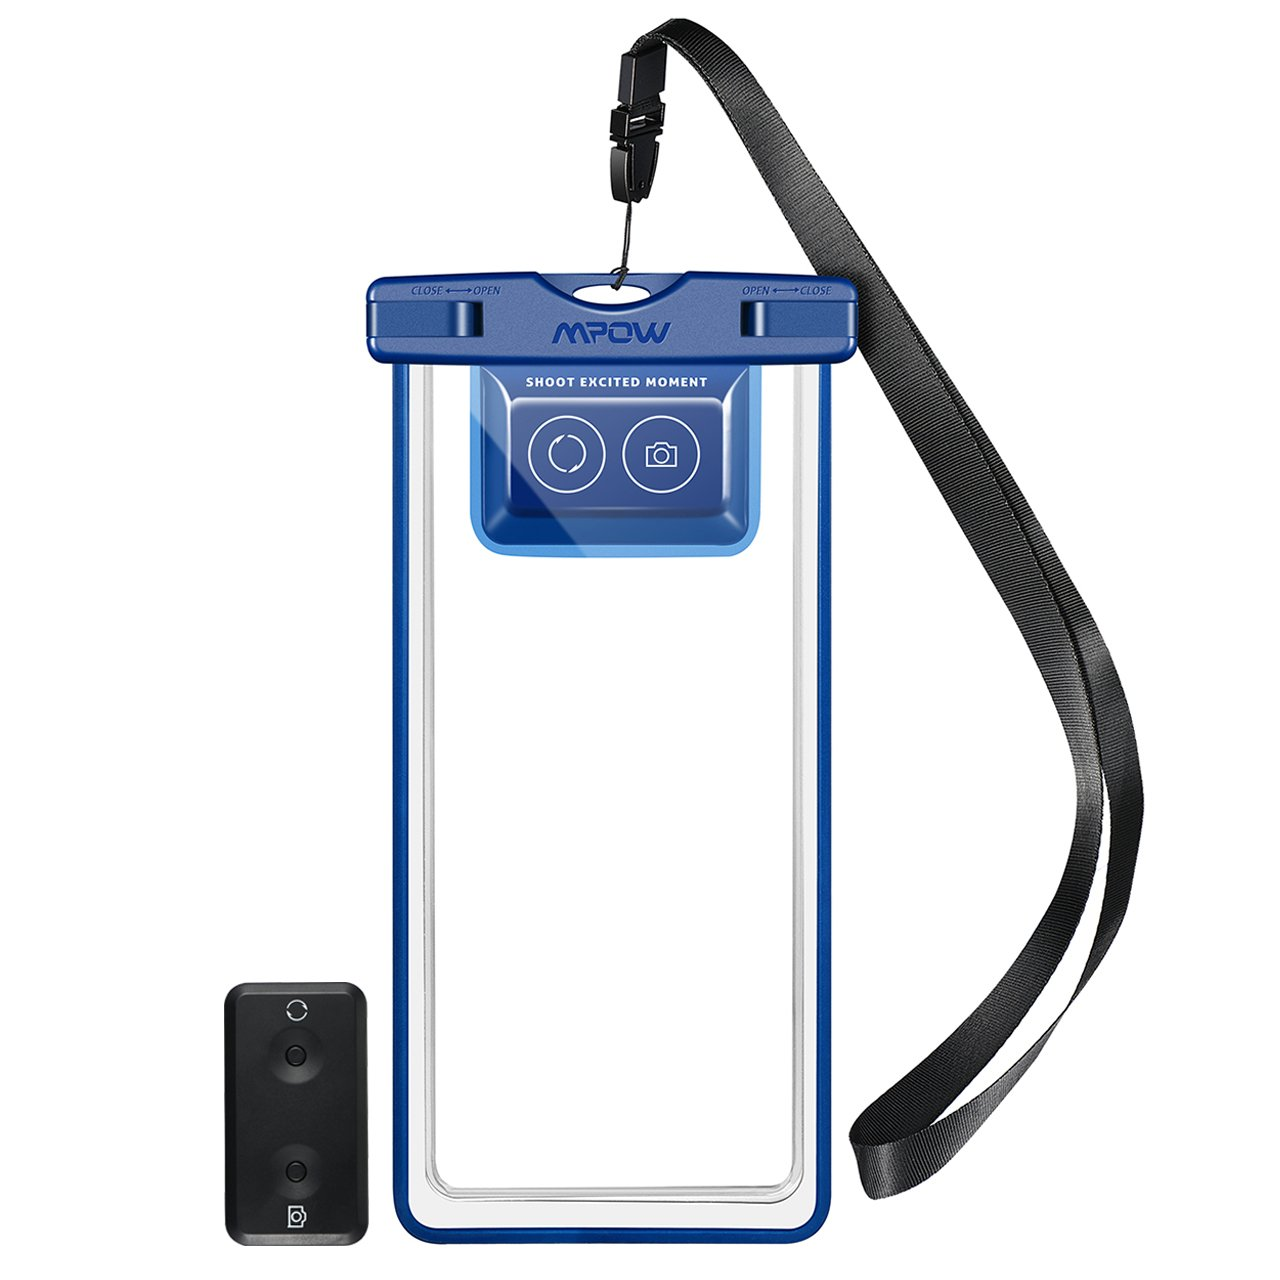 Mpow Waterproof Phone Pouch, IPX8 Waterproof Case, Dry Bag, with Bluetooth Controller for Taking Photos and Videos, Compatible for iPhone X/8/8P//7/6s, Galaxy S9/S9 Plus/S8, Google up to 6.0''